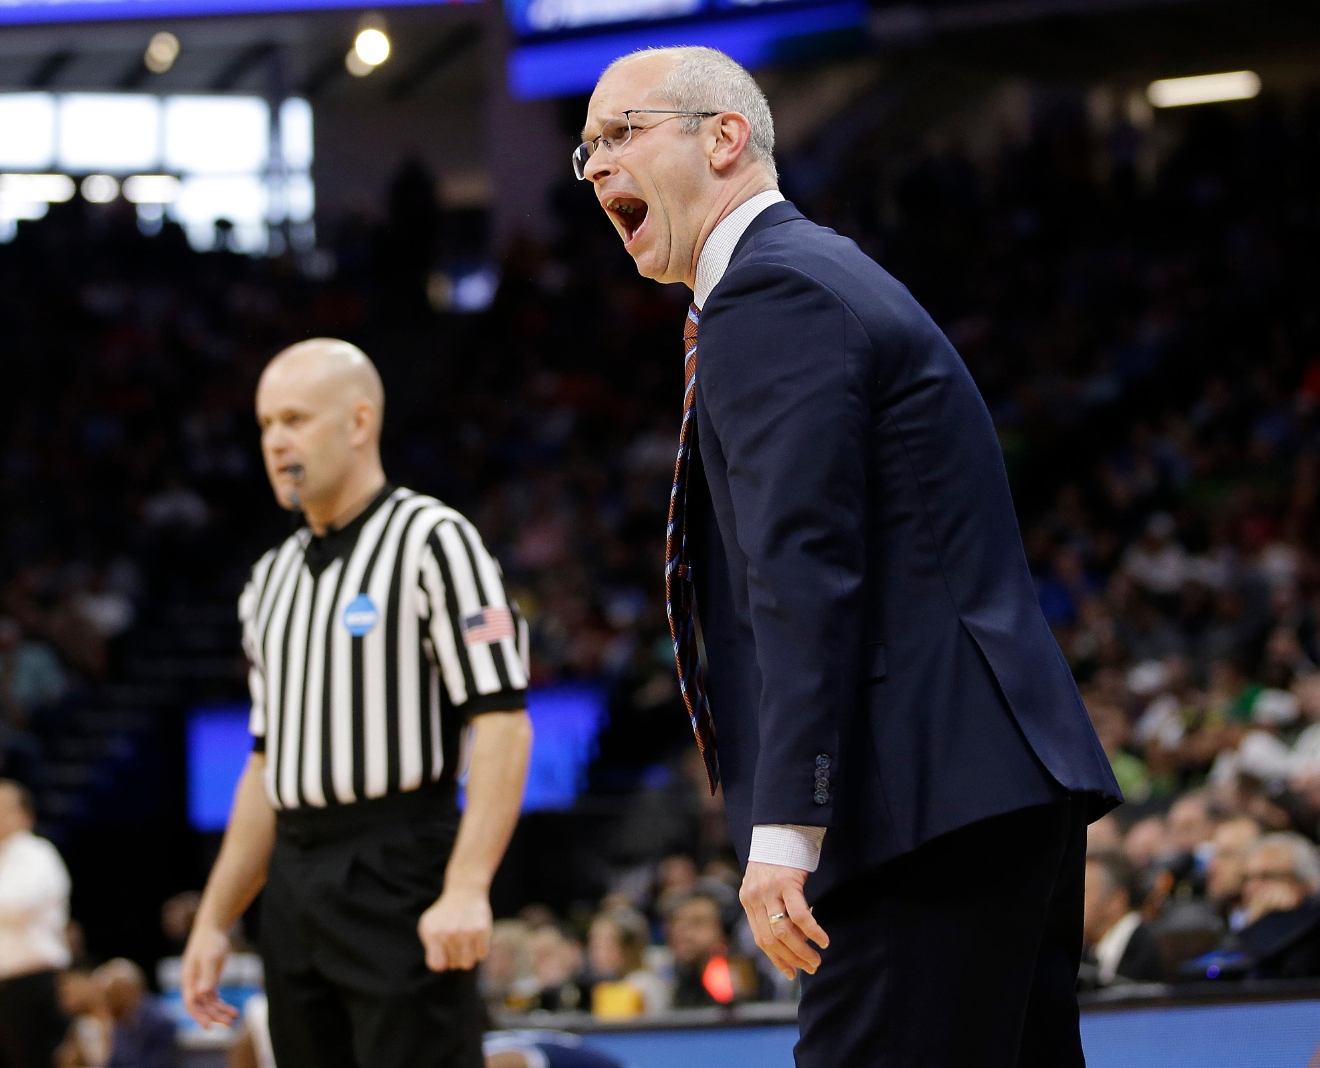 Rhode Island oach Dan Hurley yells instructions to his players during the first half against Oregon in a second-round game of the NCAA men's ollege basketball tournament in Sacramento, Calif., Sunday, March 19, 2017. (AP Photo/Rich Pedroncelli )